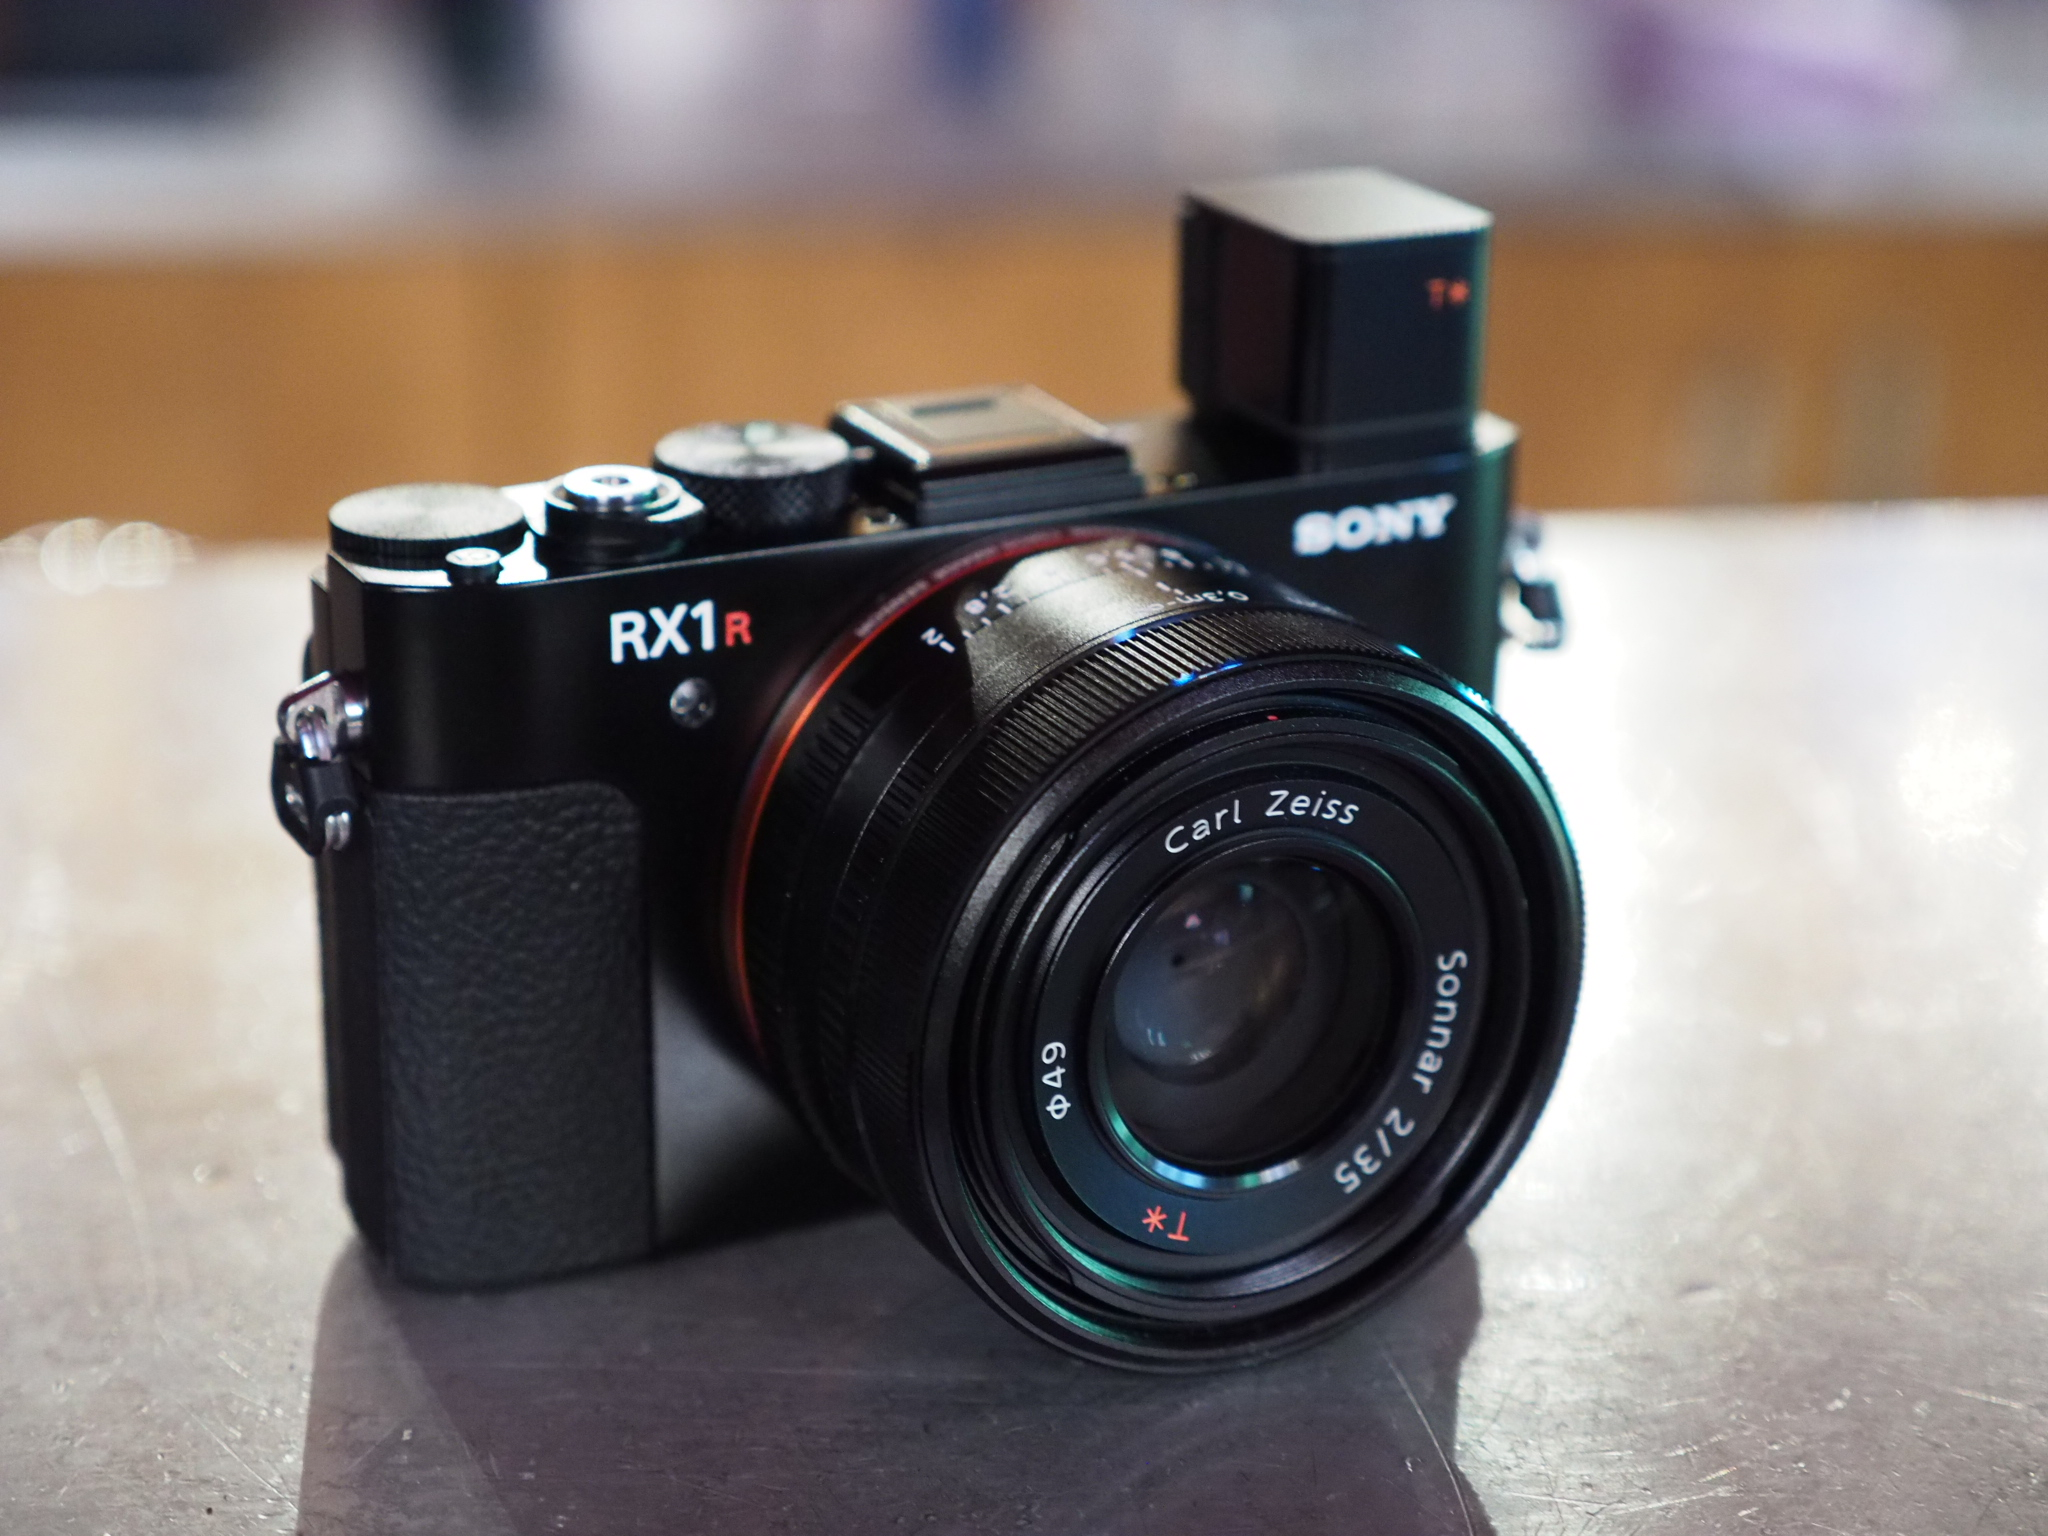 Sony Cyber-shot DSC-RX1 RII Digital Still Camera